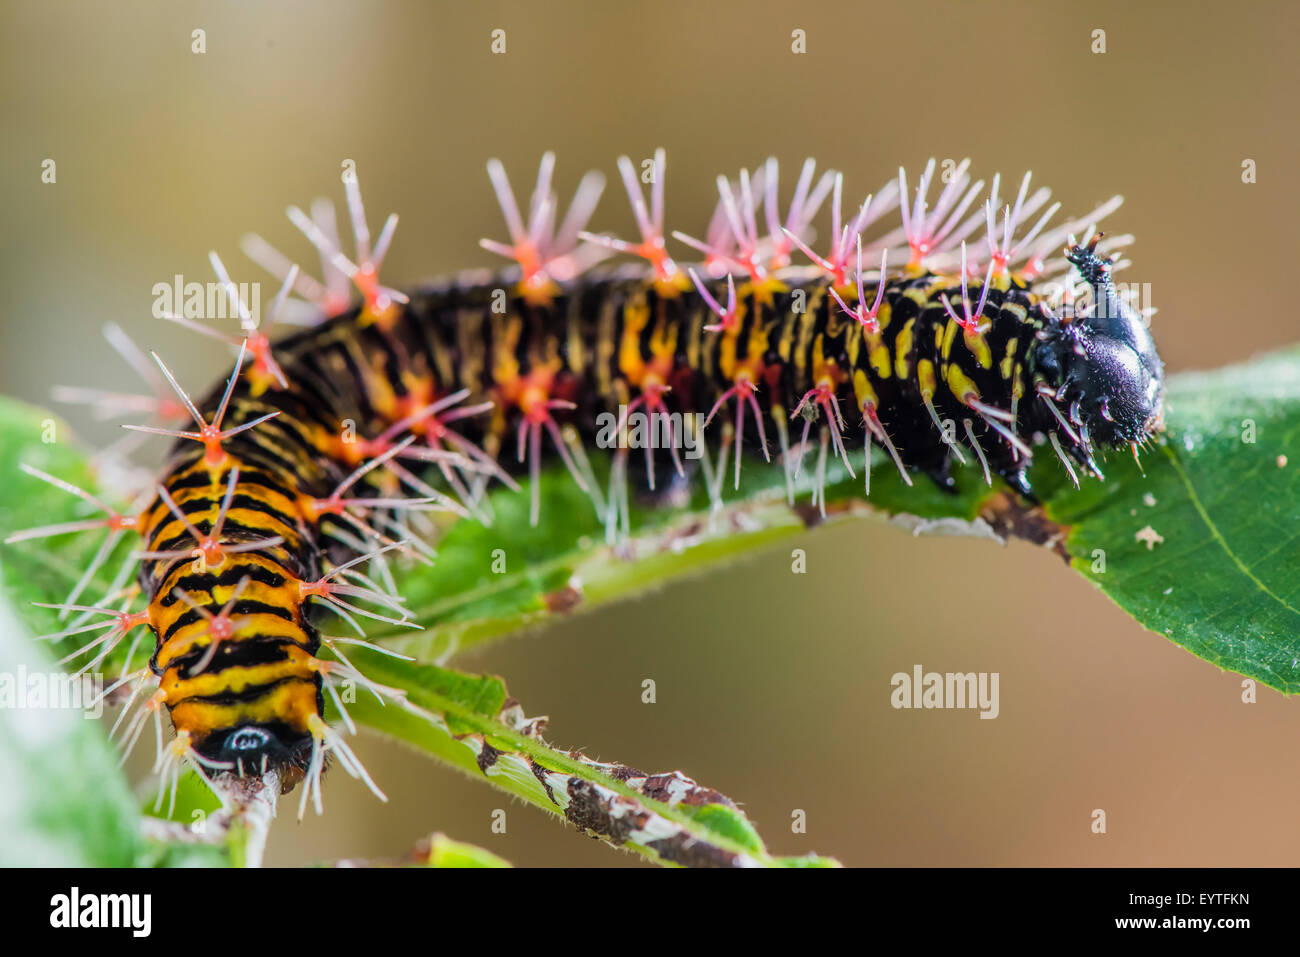 A caterpillar of the Sulphur butterfly species Stock Photo